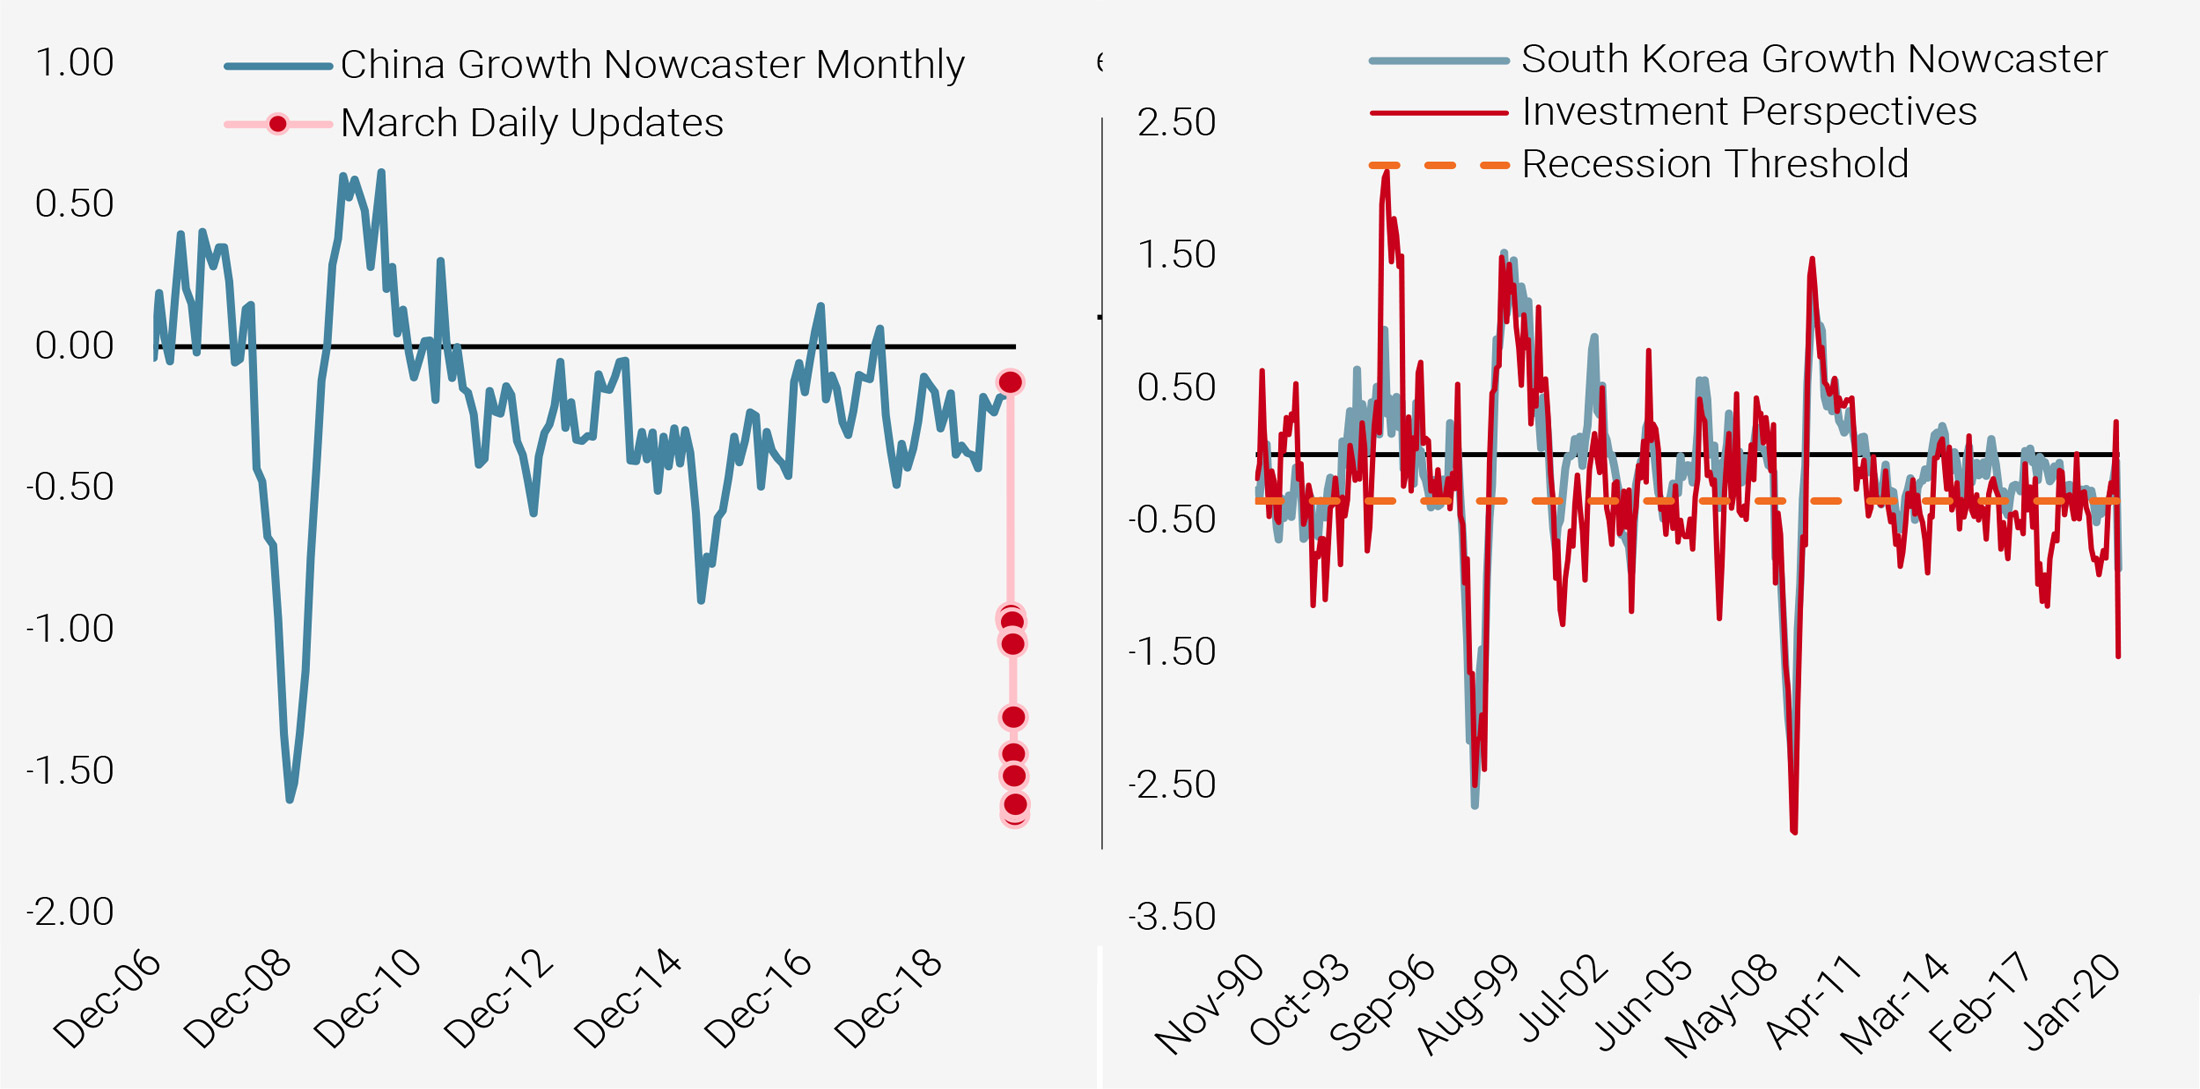 Figure 3: China Growth Nowcaster (left) and South Korea Growth Nowcaster (right)